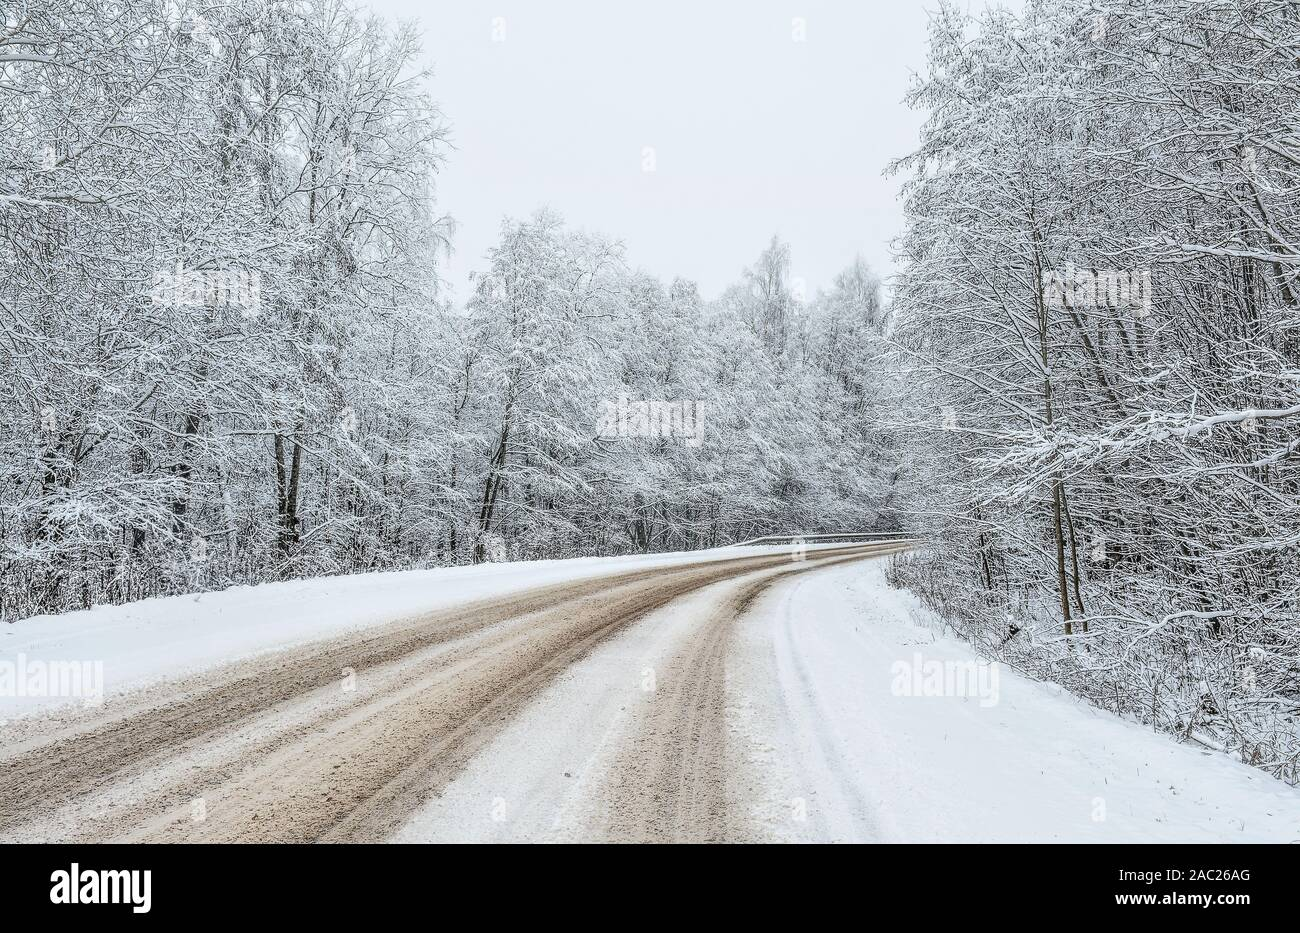 Road on a snowy December day in the countryside. Stock Photo